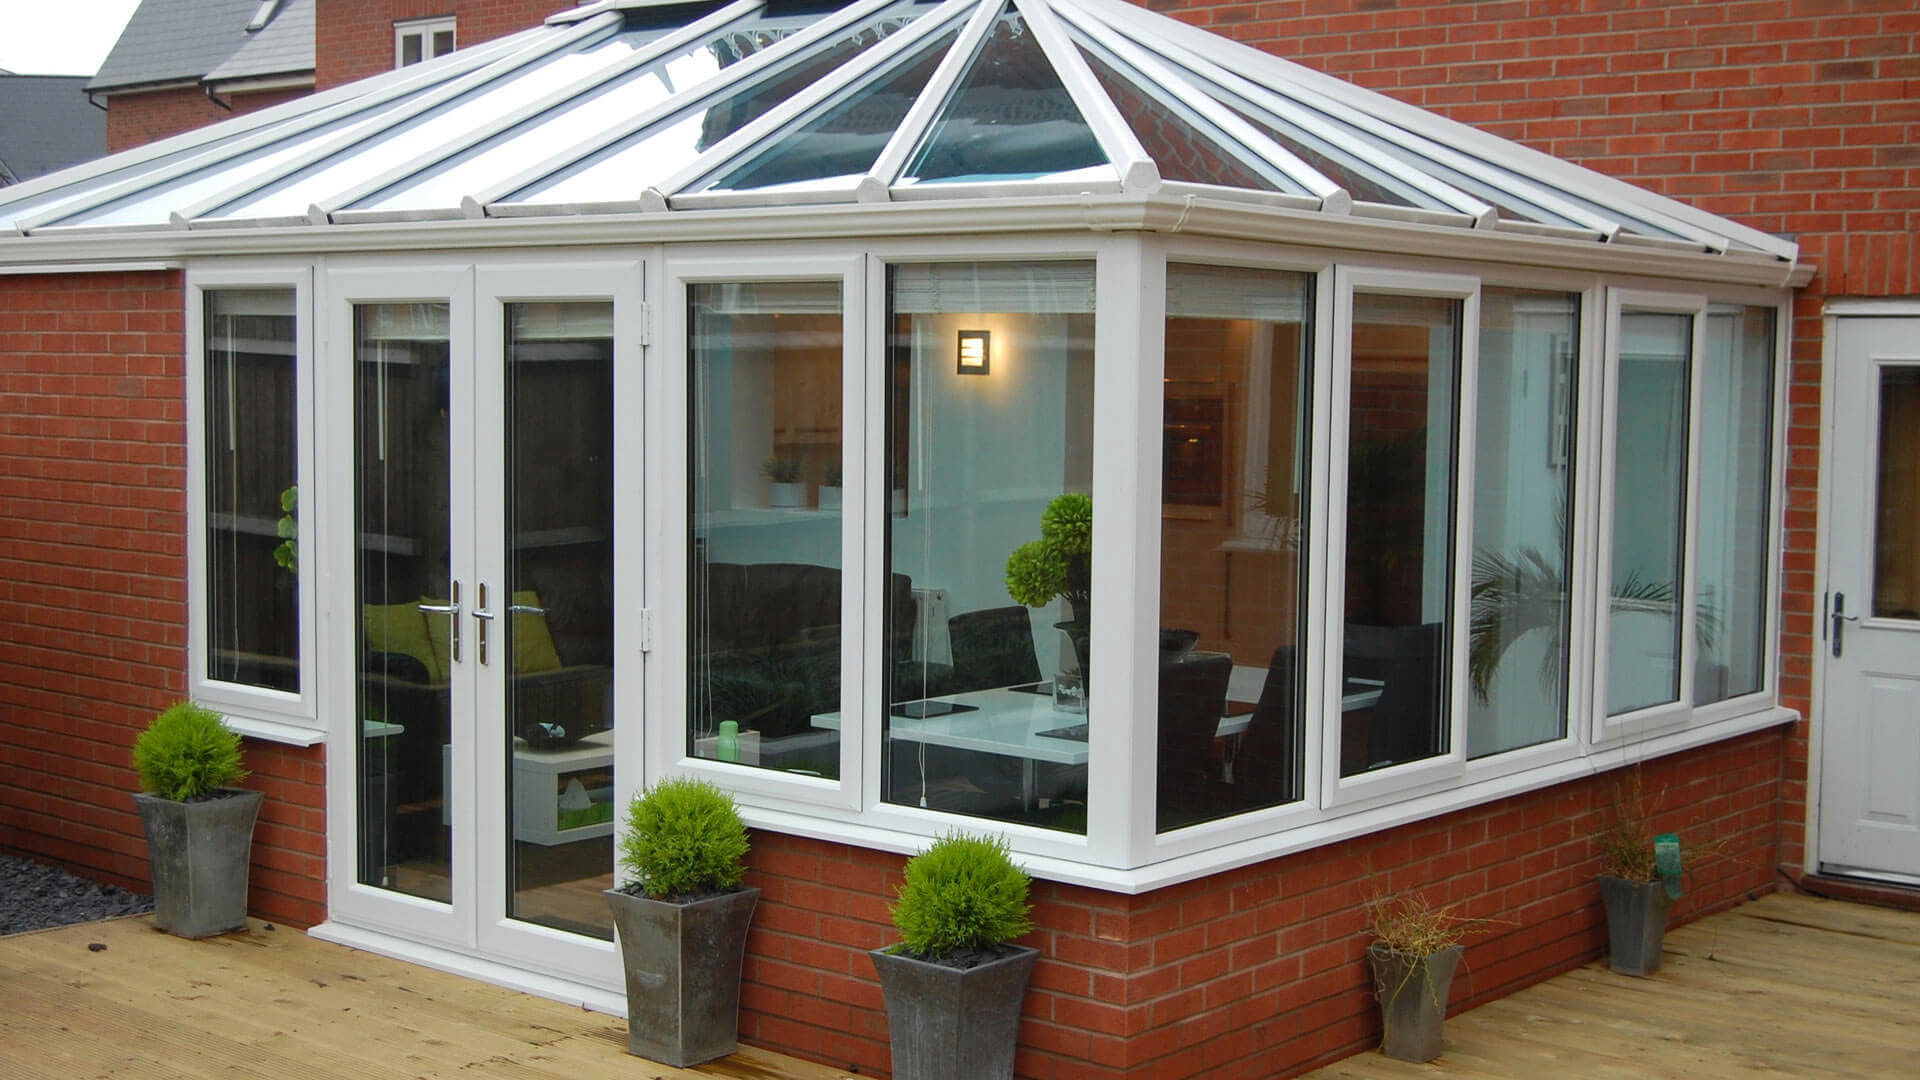 Edwardian Style & Georgian Style Conservatories from Emerald